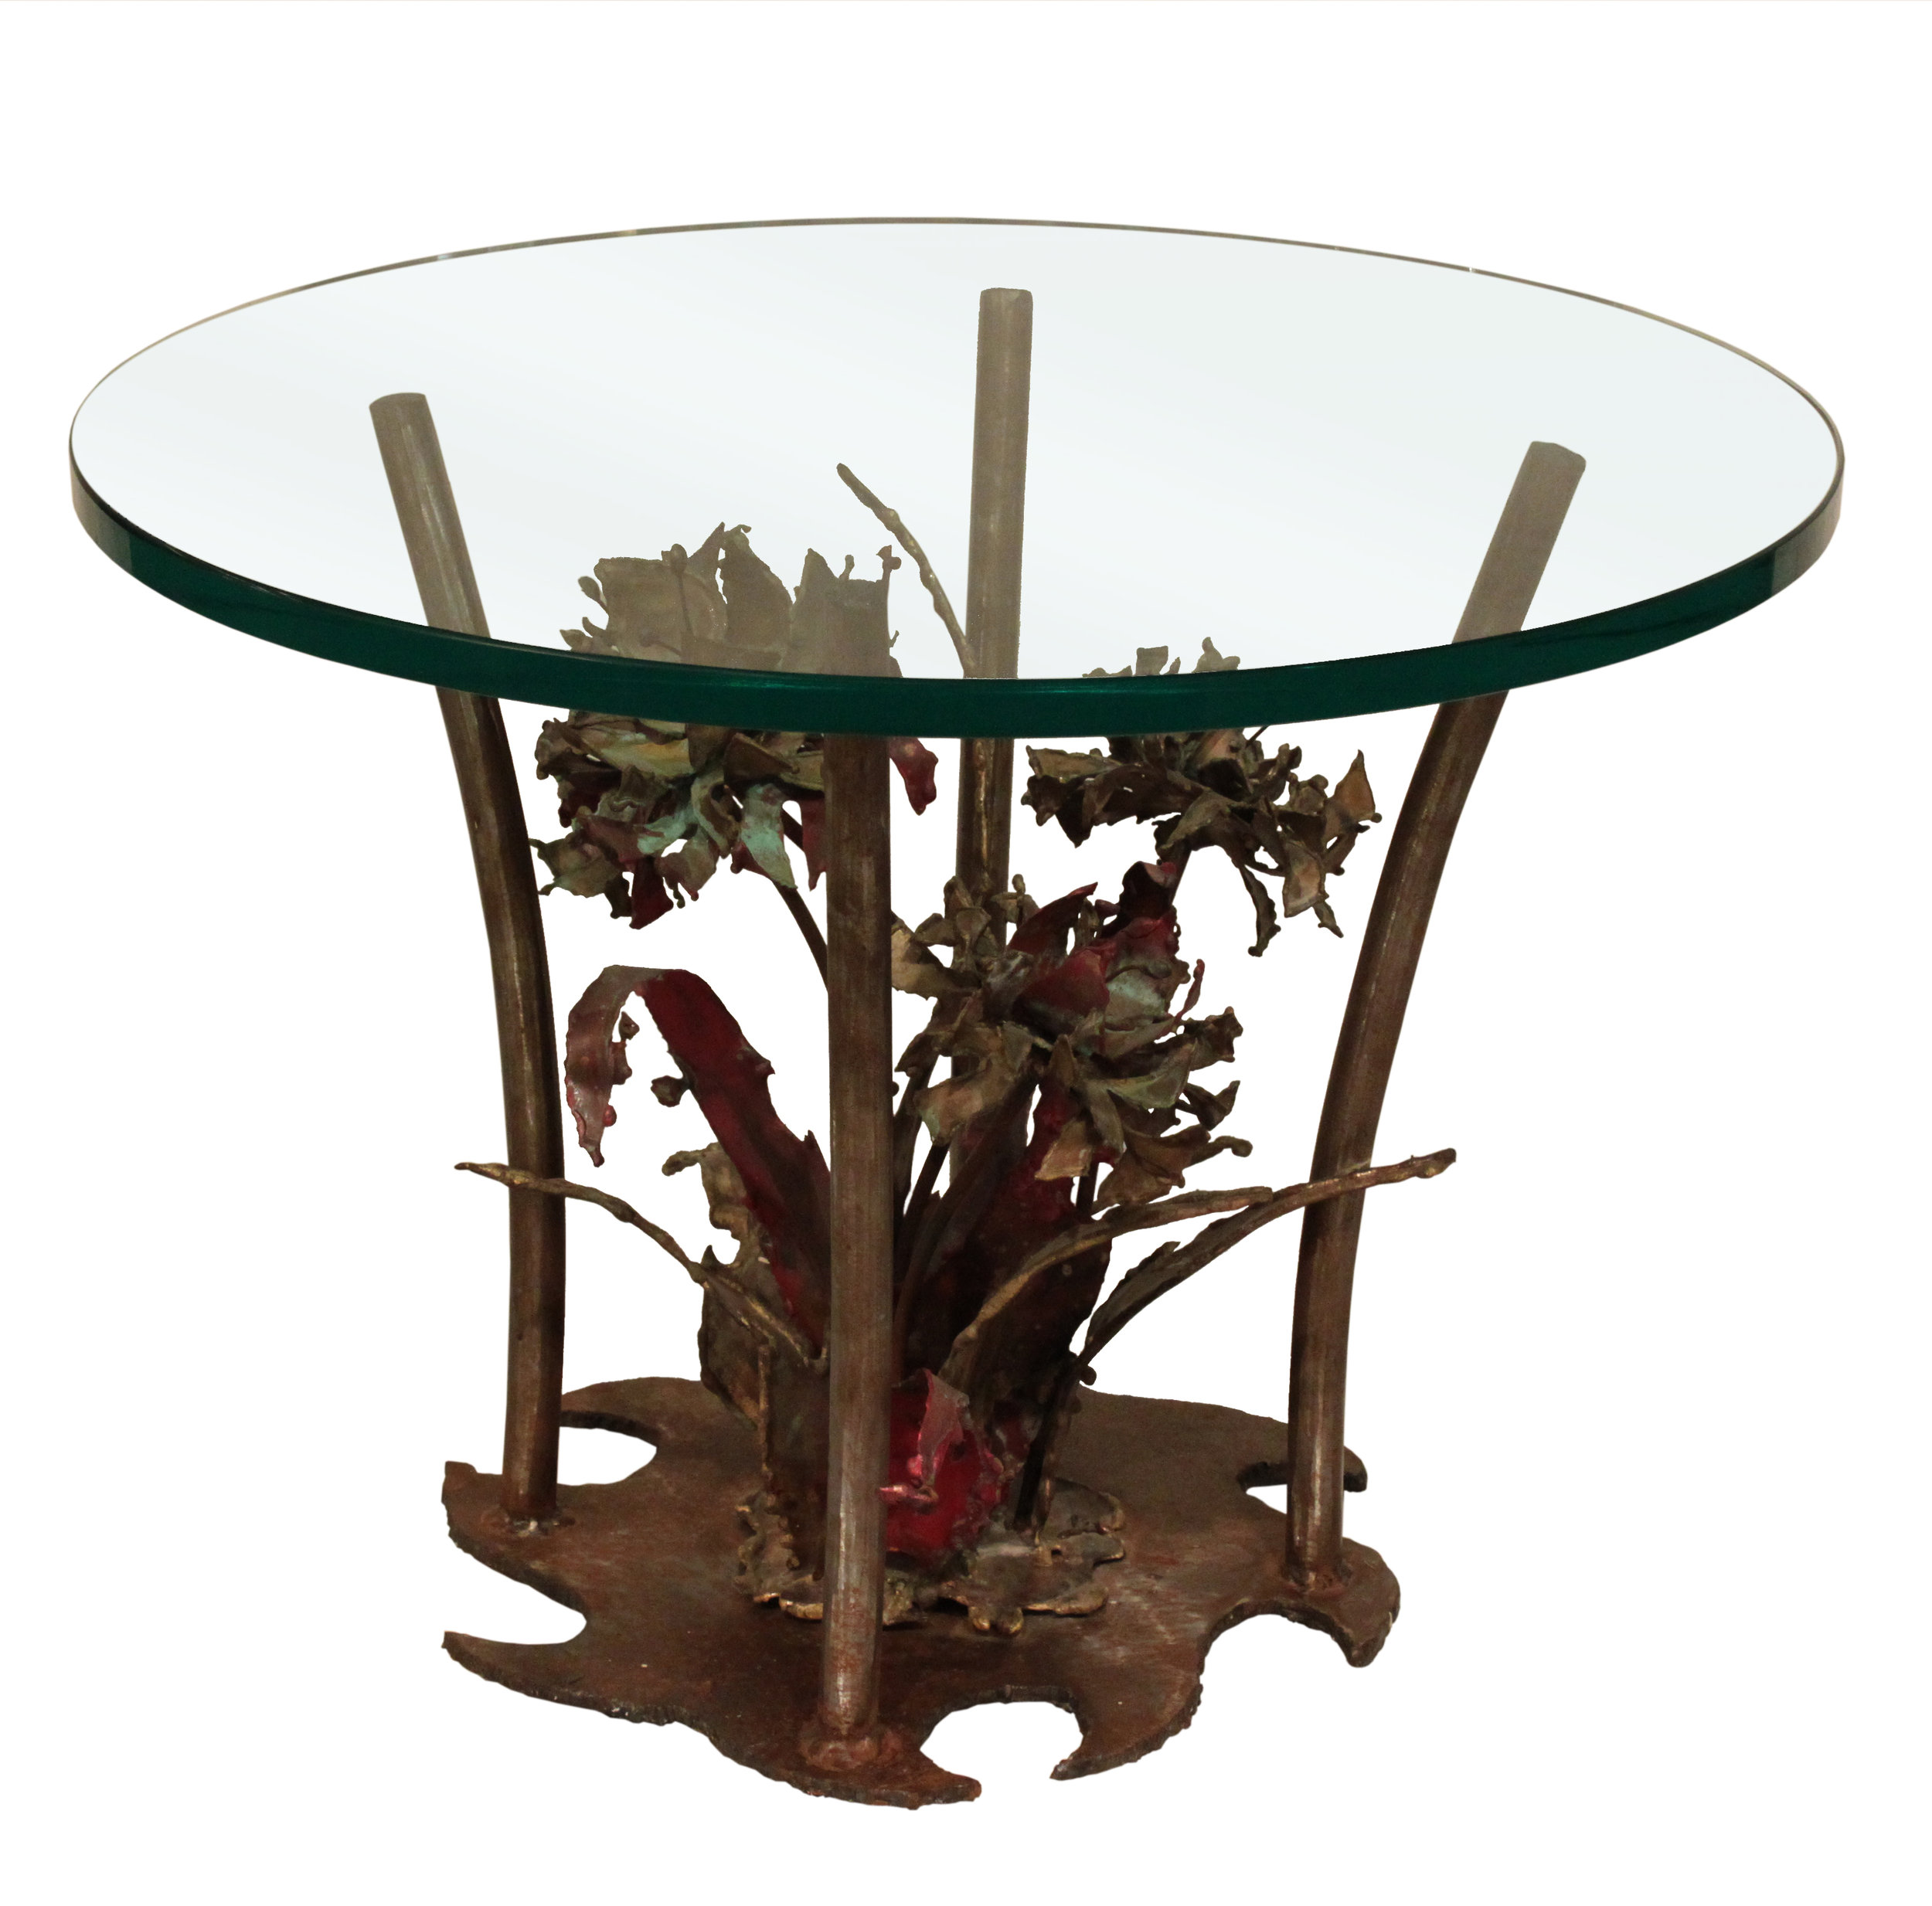 Seandel 65 metal flowers endtable114 hires.jpg